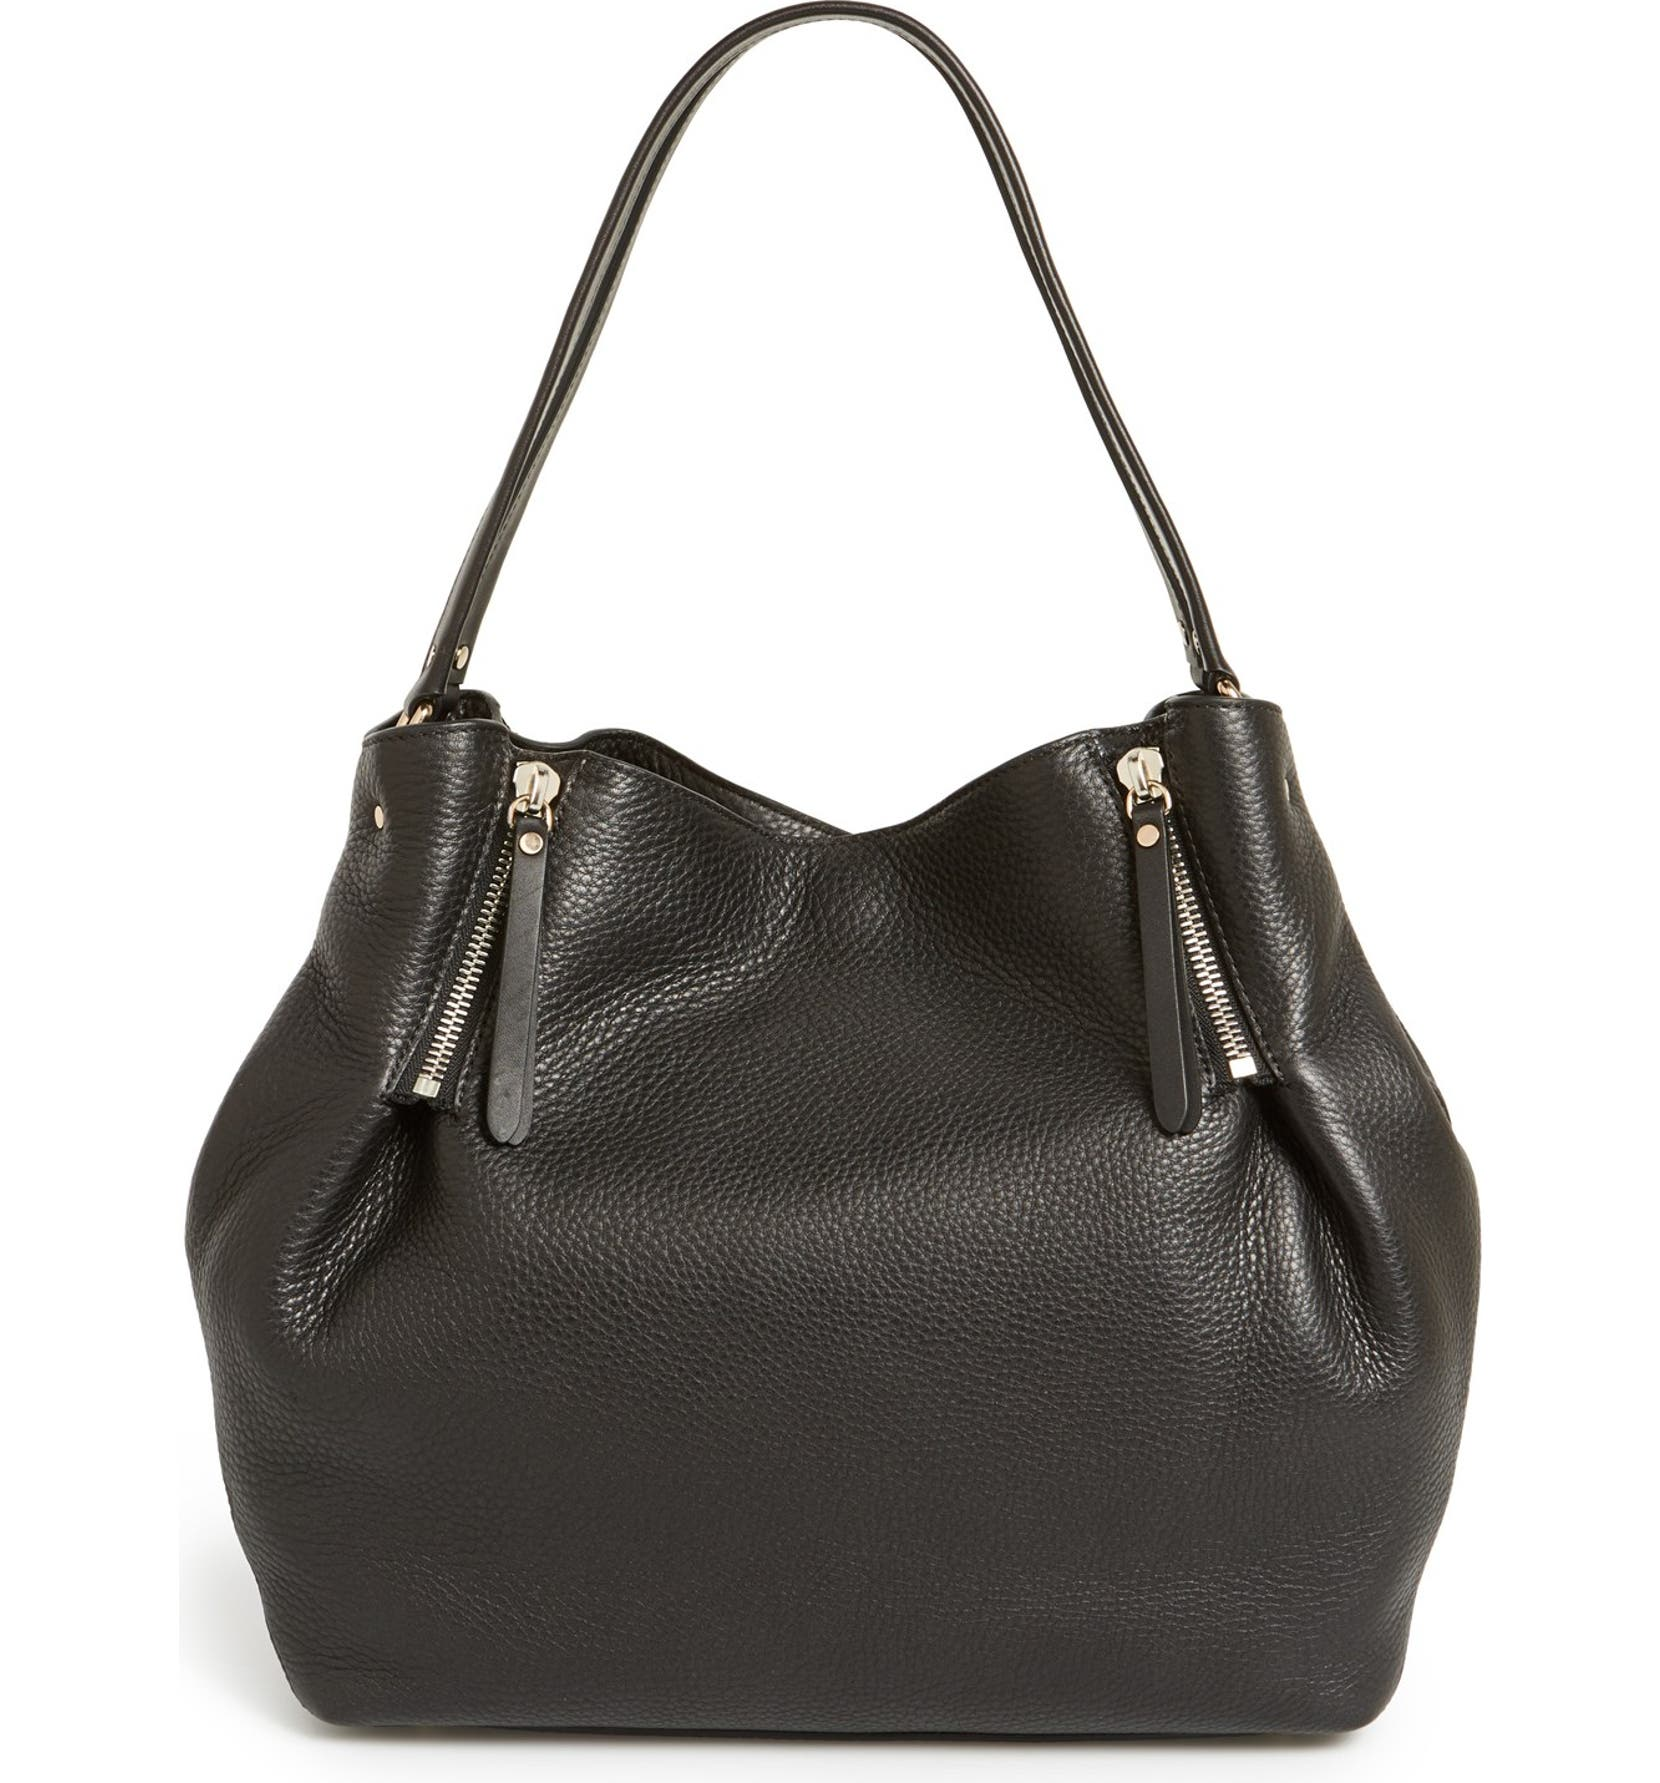 Burberry  Medium Maidstone  Leather Tote  4059c5d75d1a8